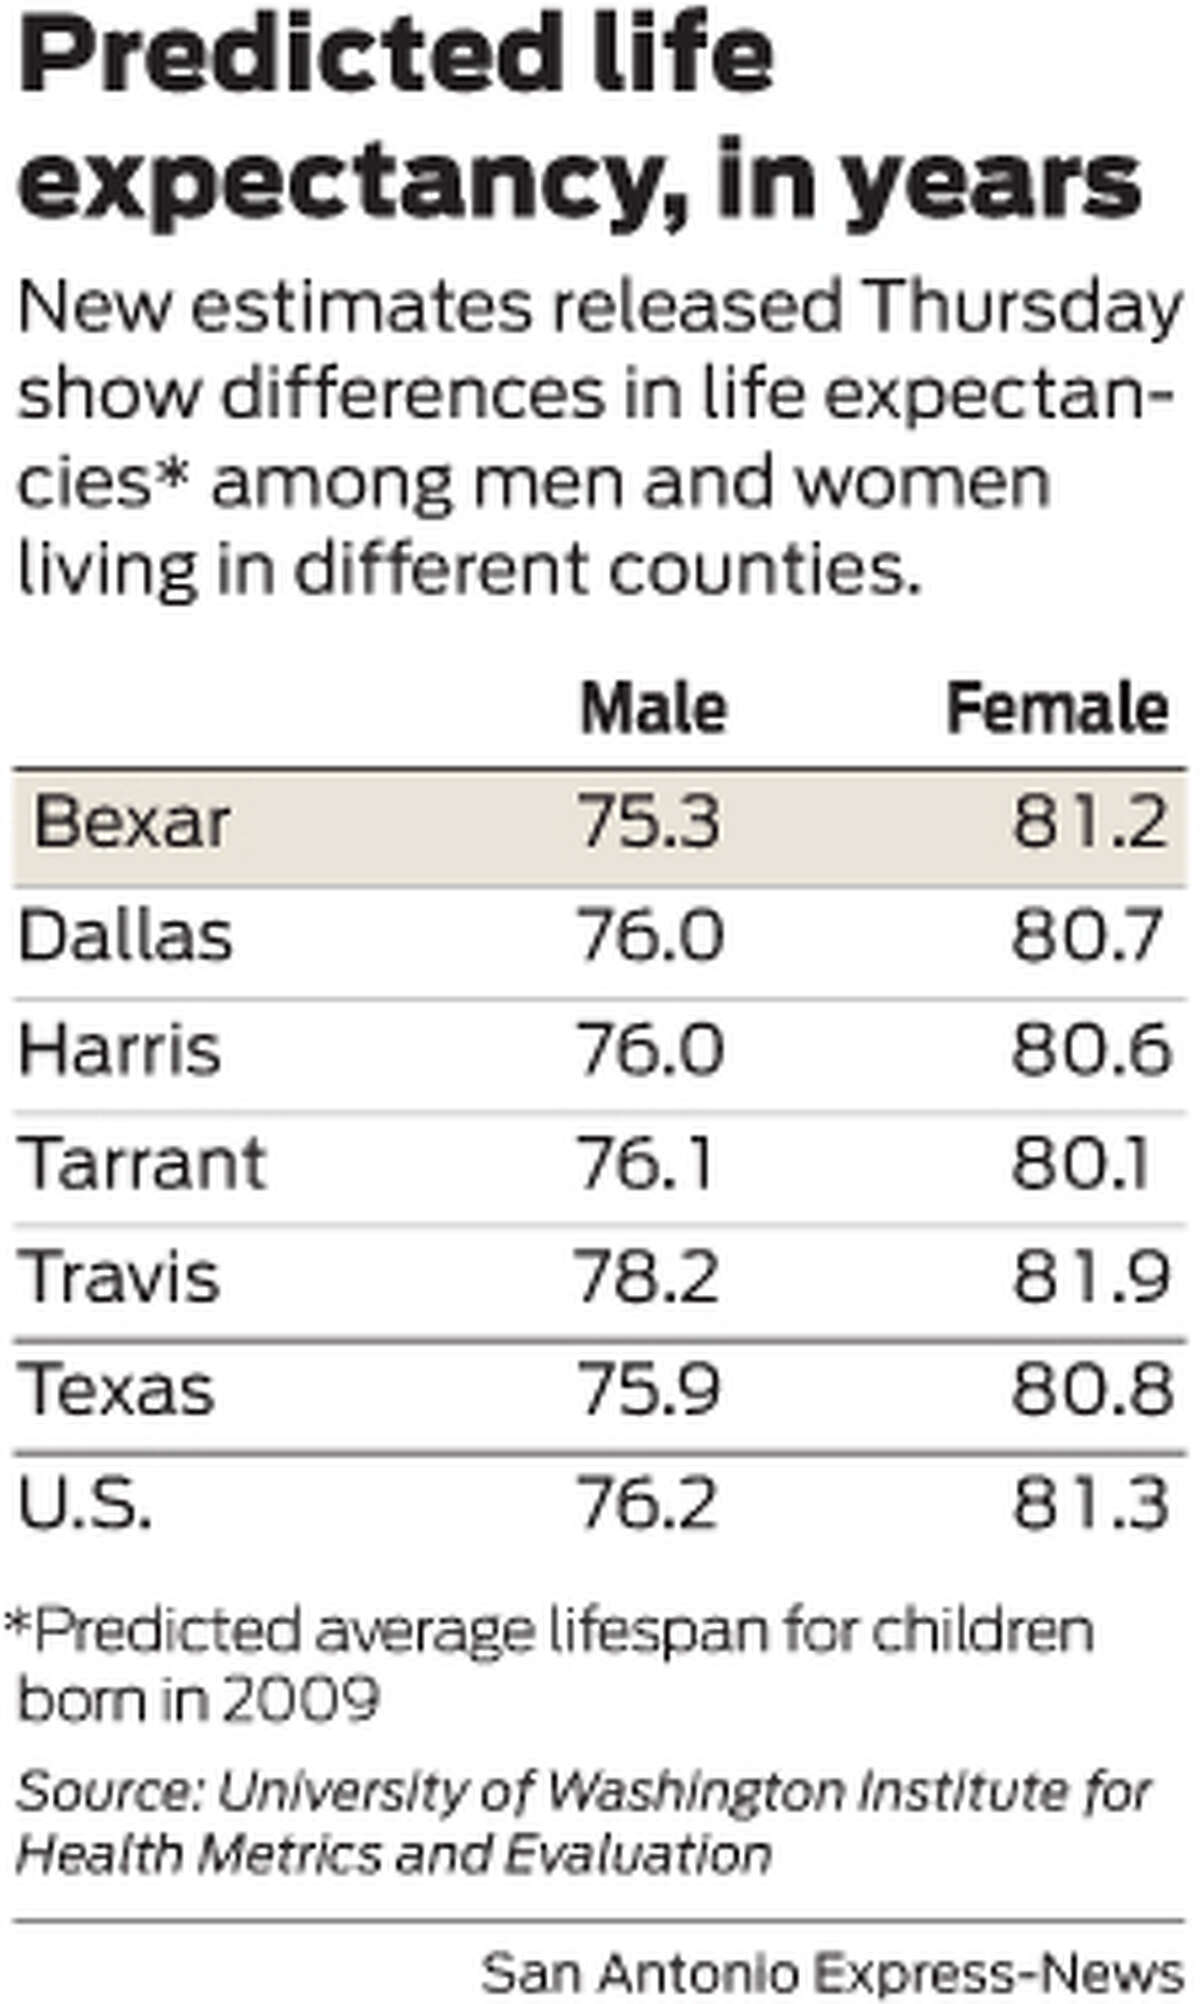 New estimates released Thursday show differences in life expectancies* among men and women living in different counties.